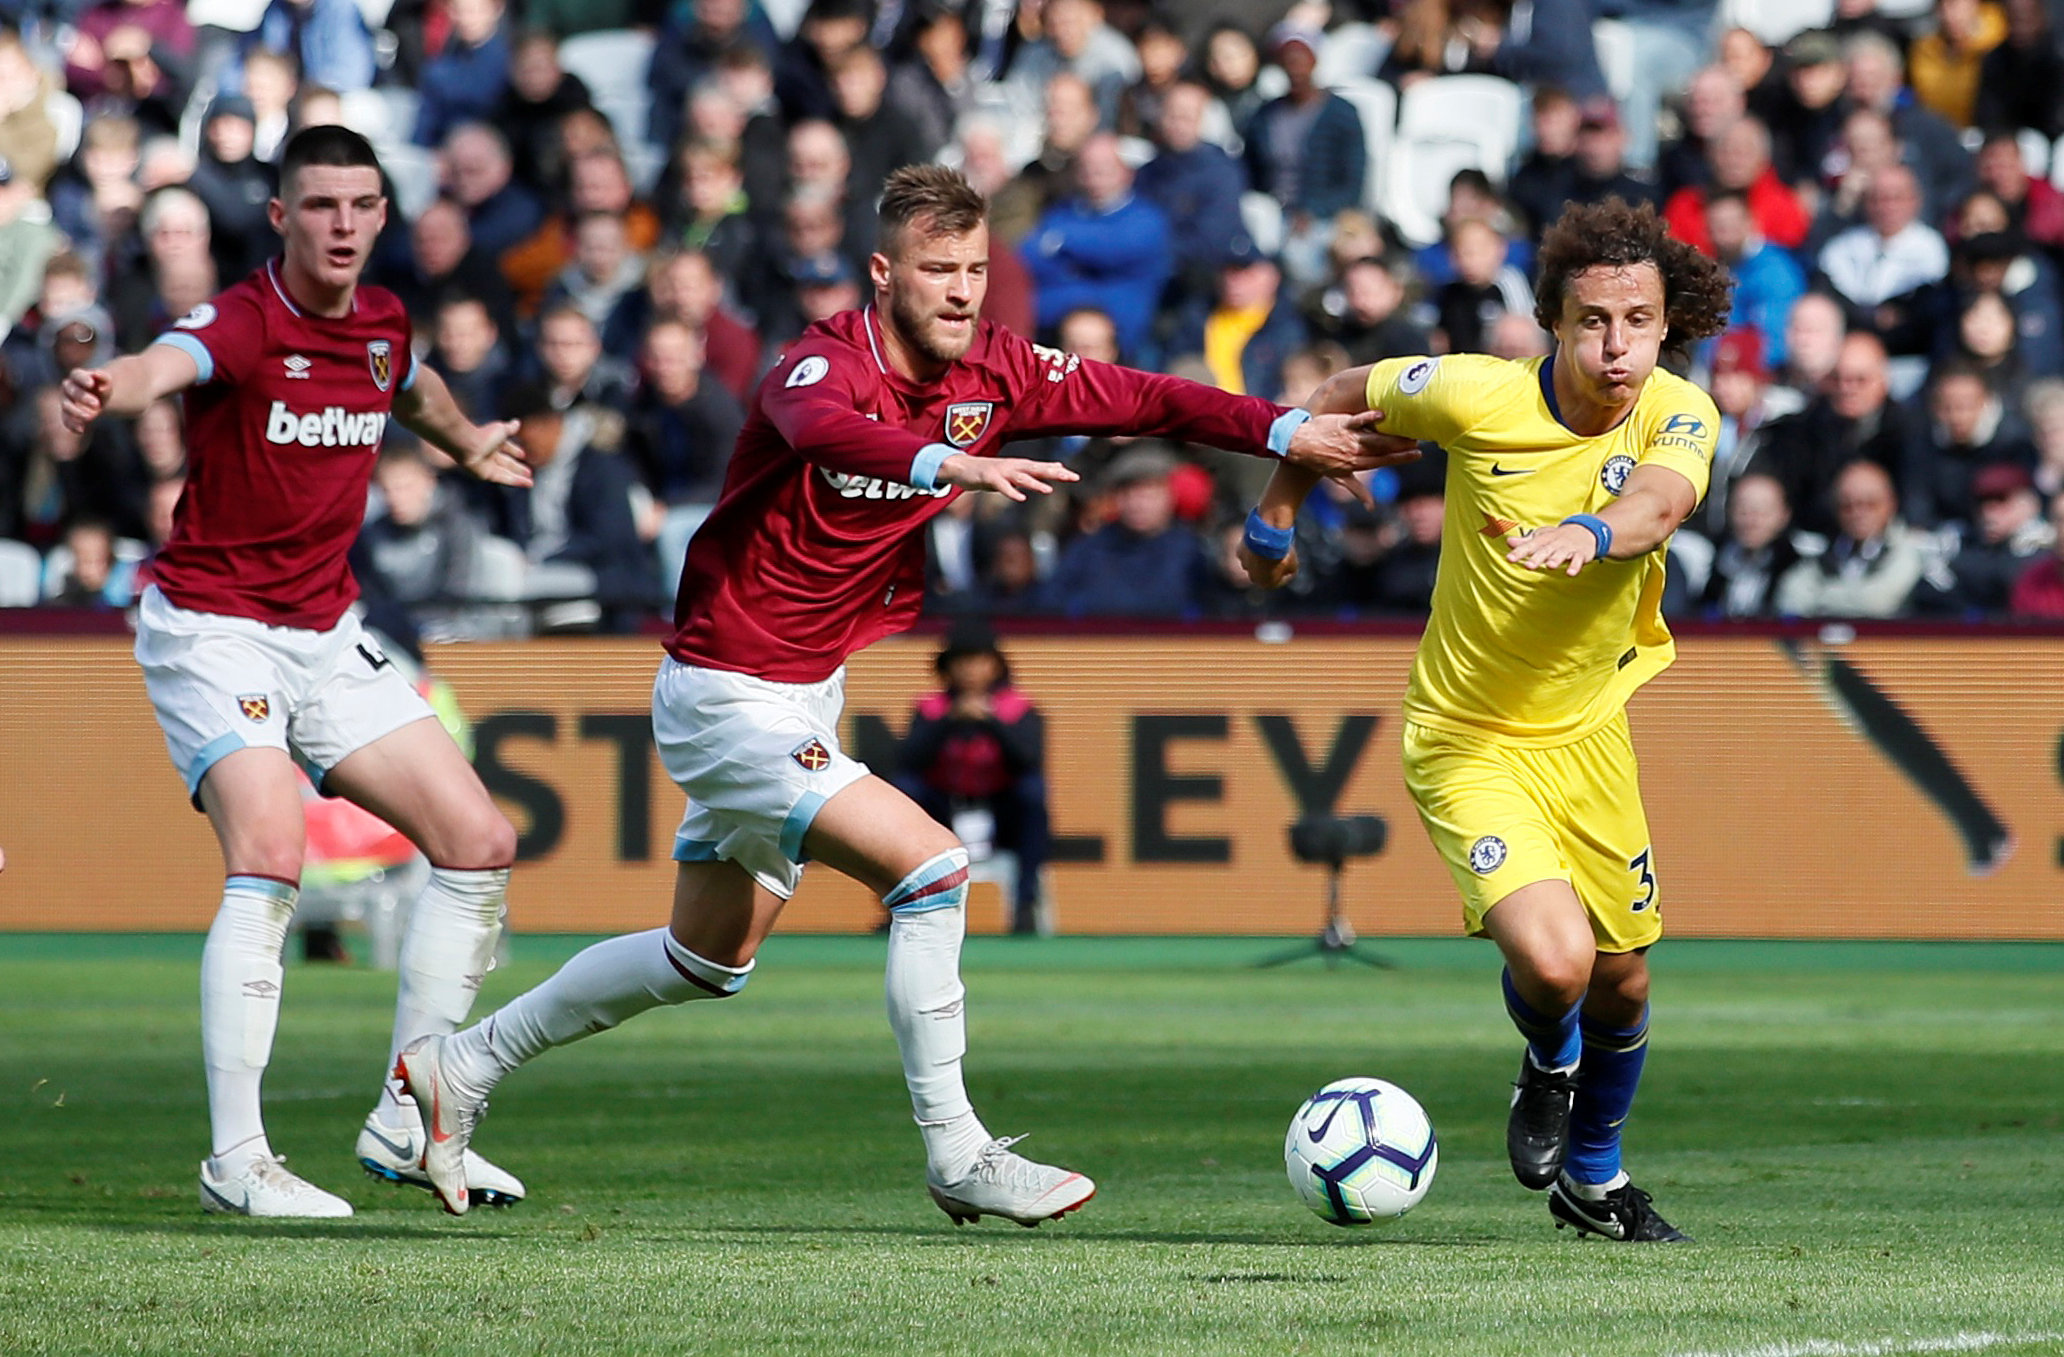 Football: Chelsea drop first points with 0-0 draw at West Ham